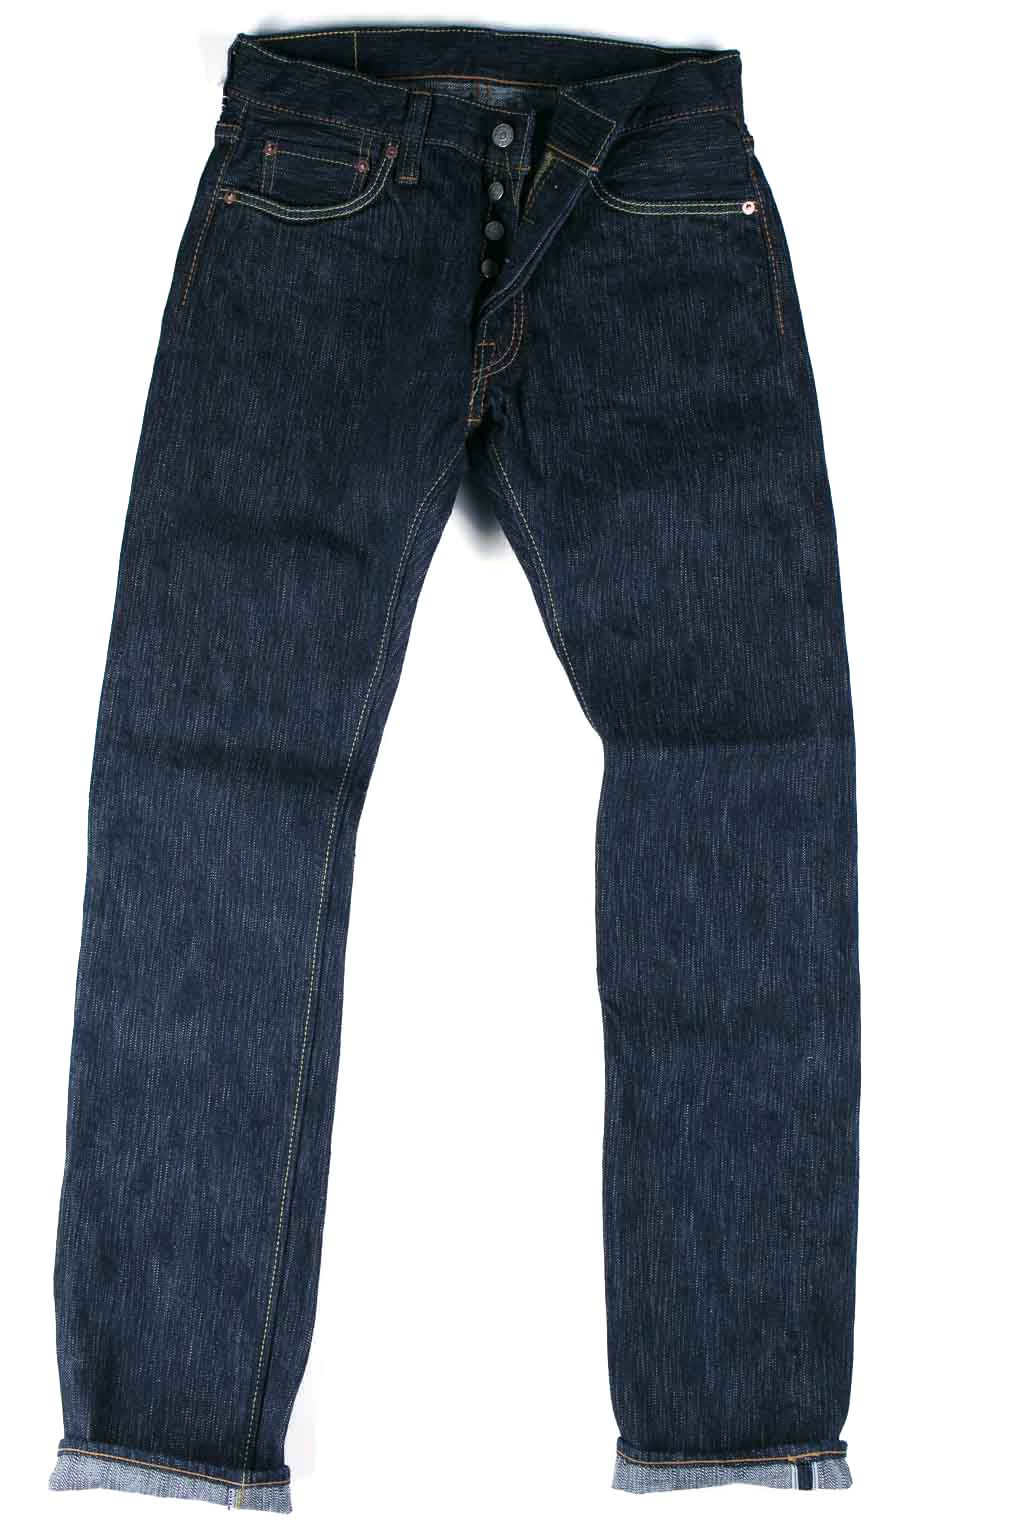 17.5 oz Natural Indigo Jeans Tapered Slim 1 Wash